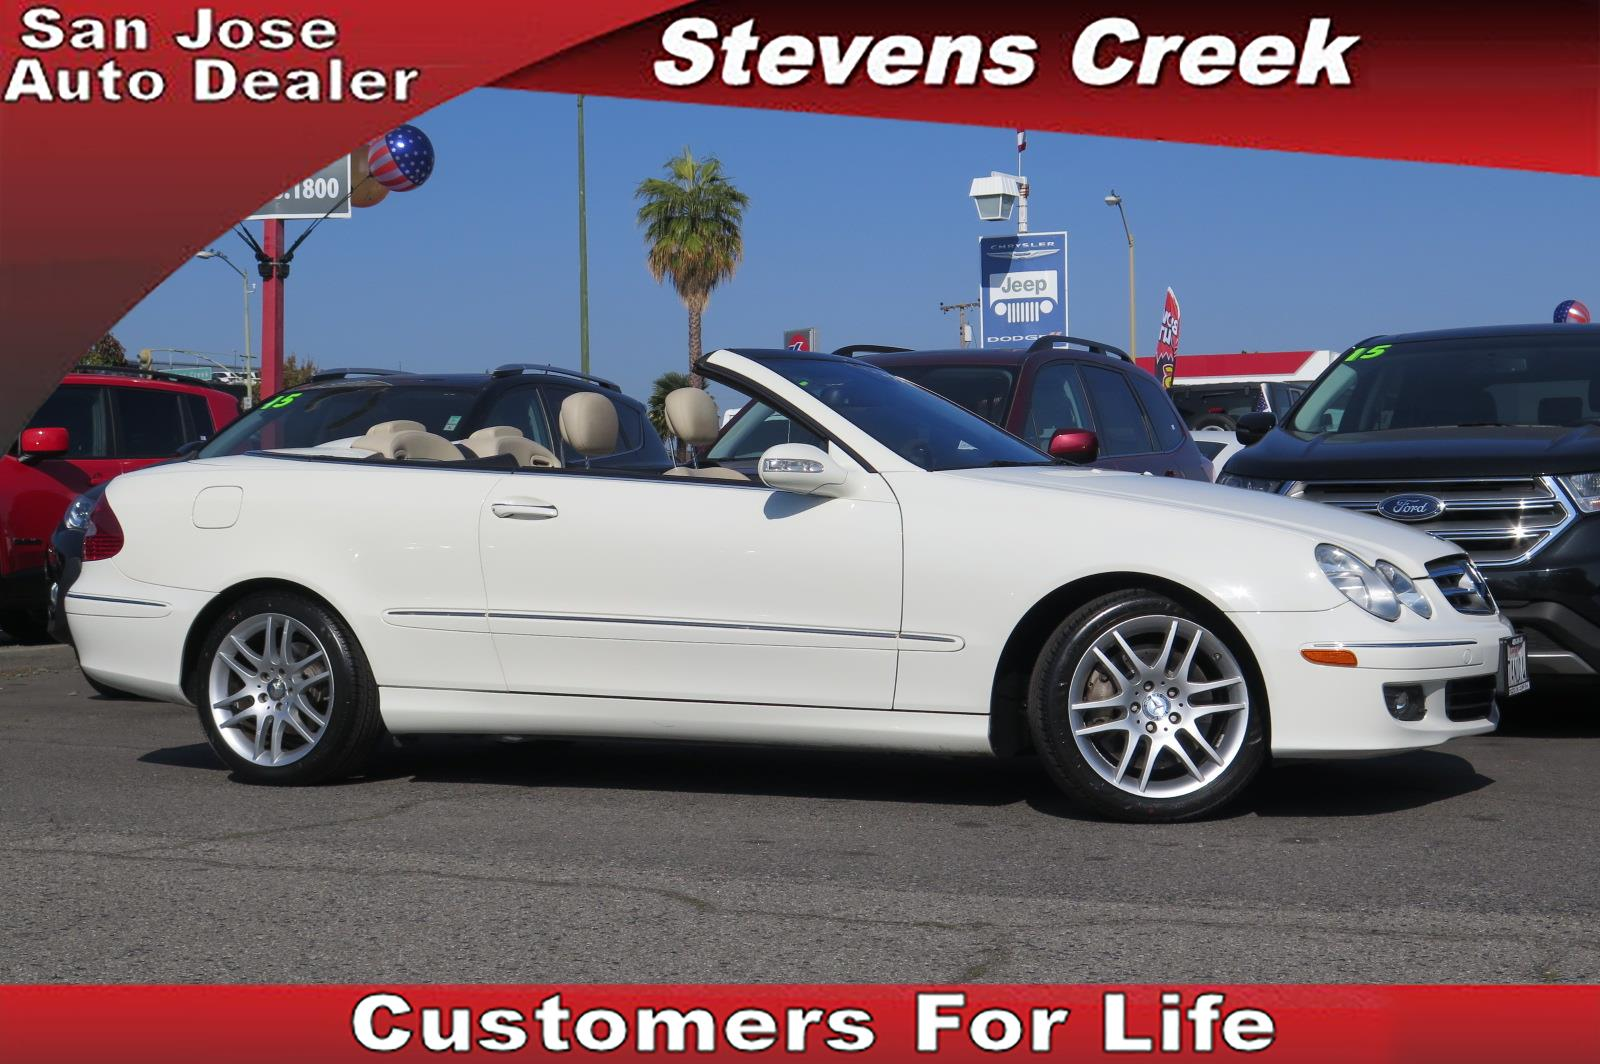 2009 MERCEDES-BENZ CLK-CLASS CLK350 white 35l v6 automatic remote convertible roof operation